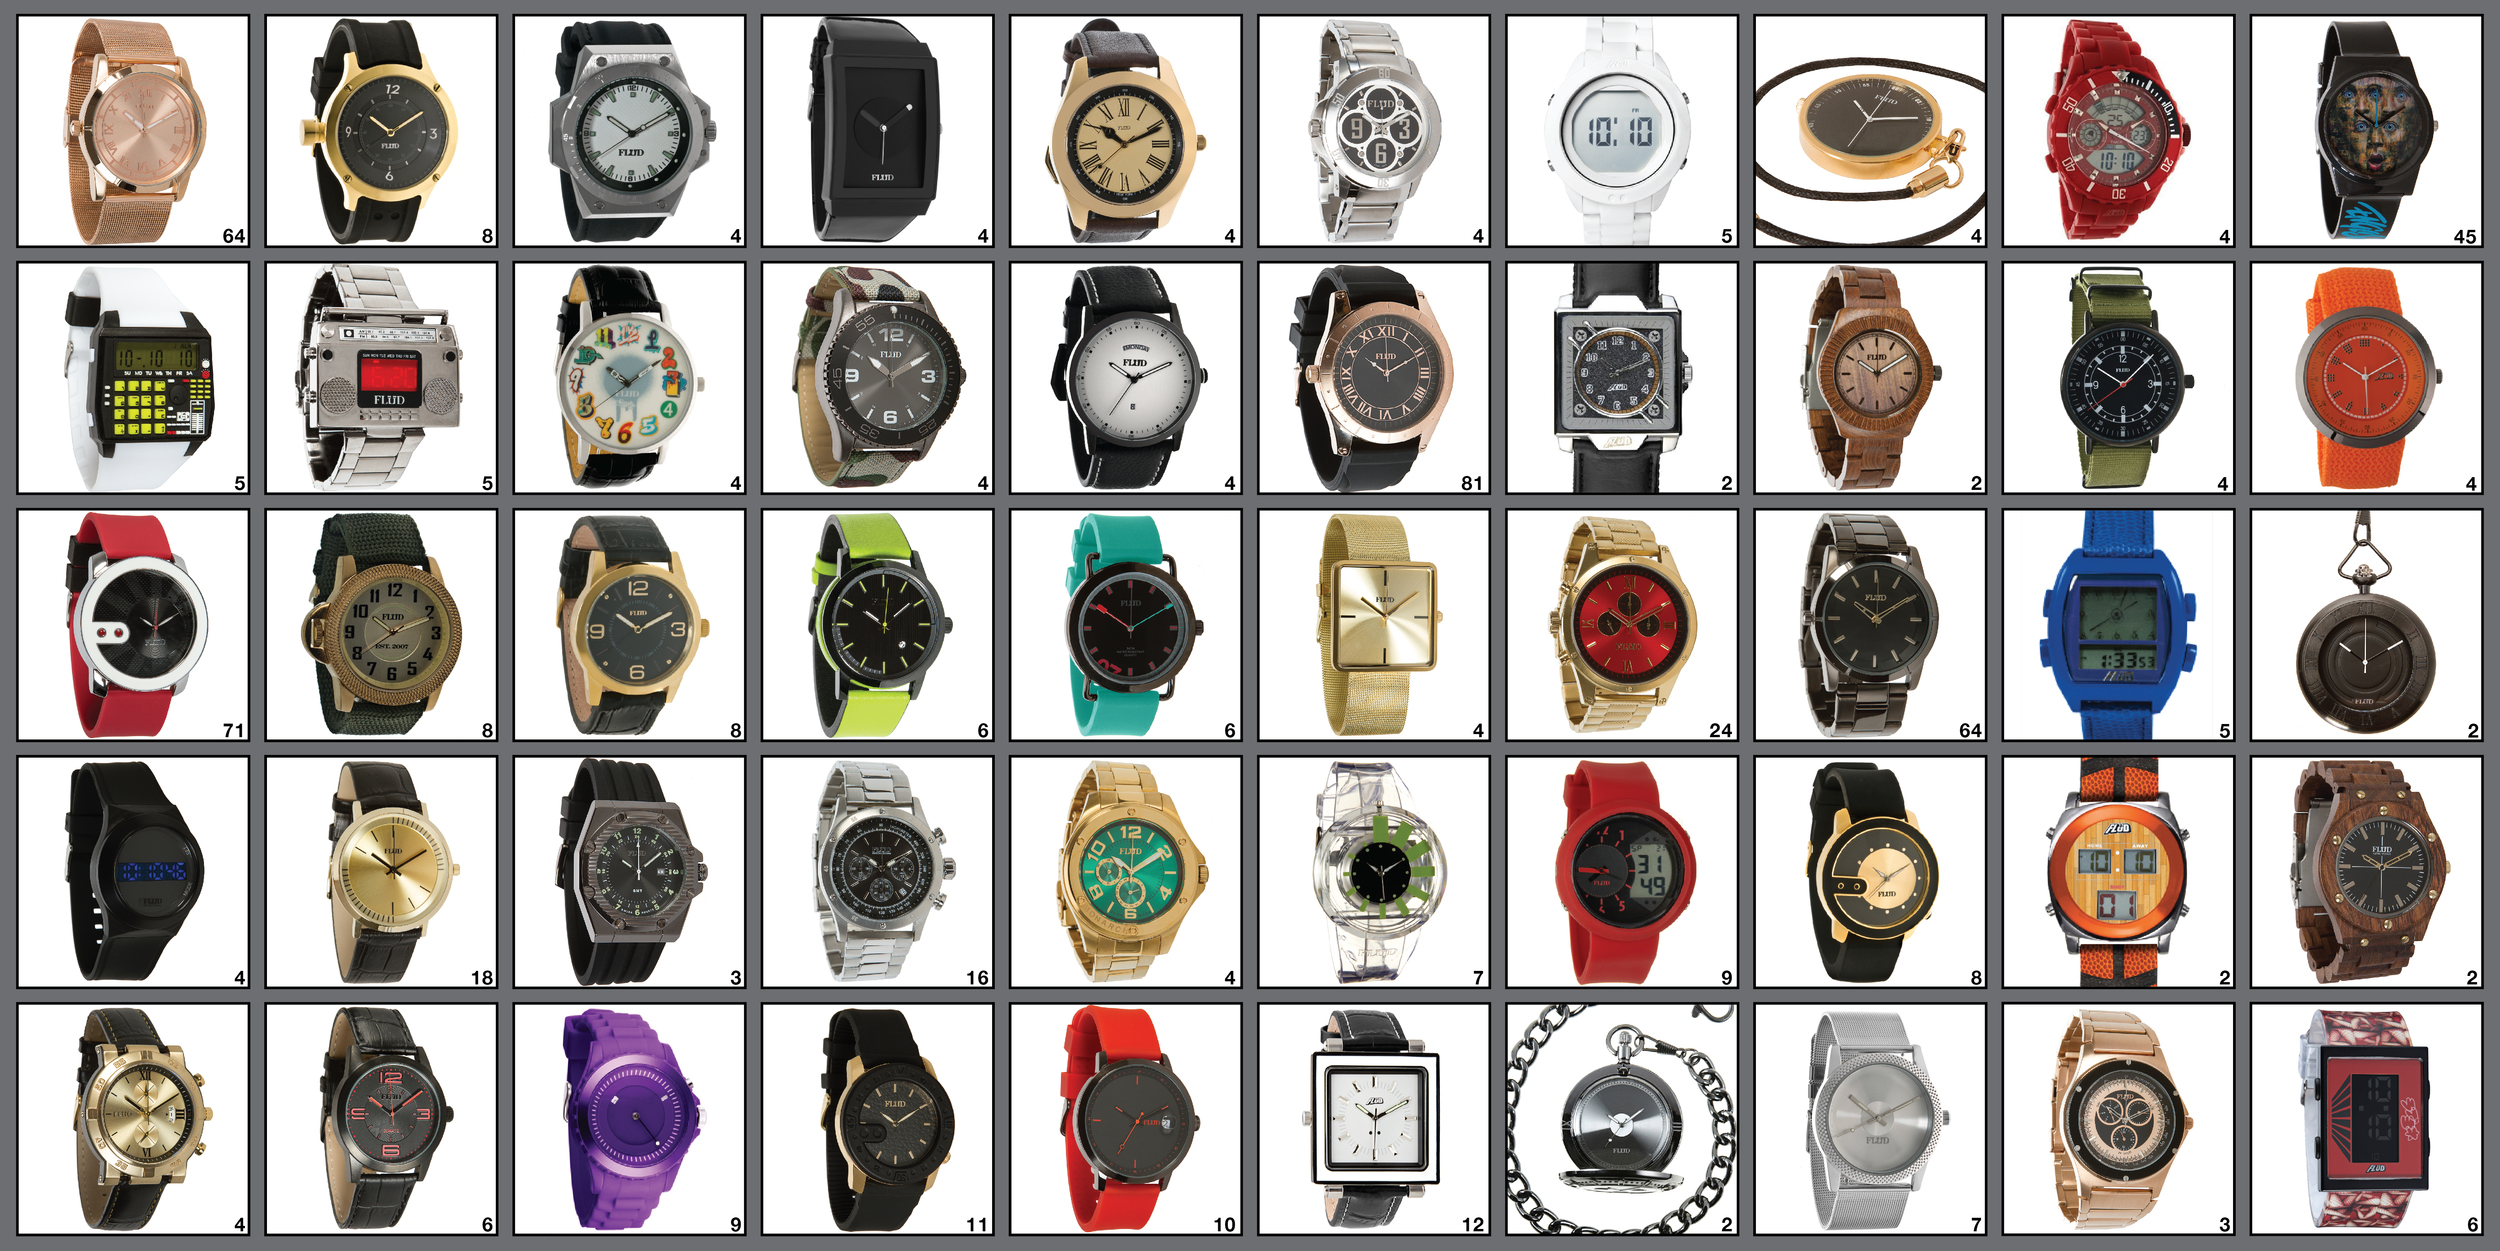 The Watch Wall